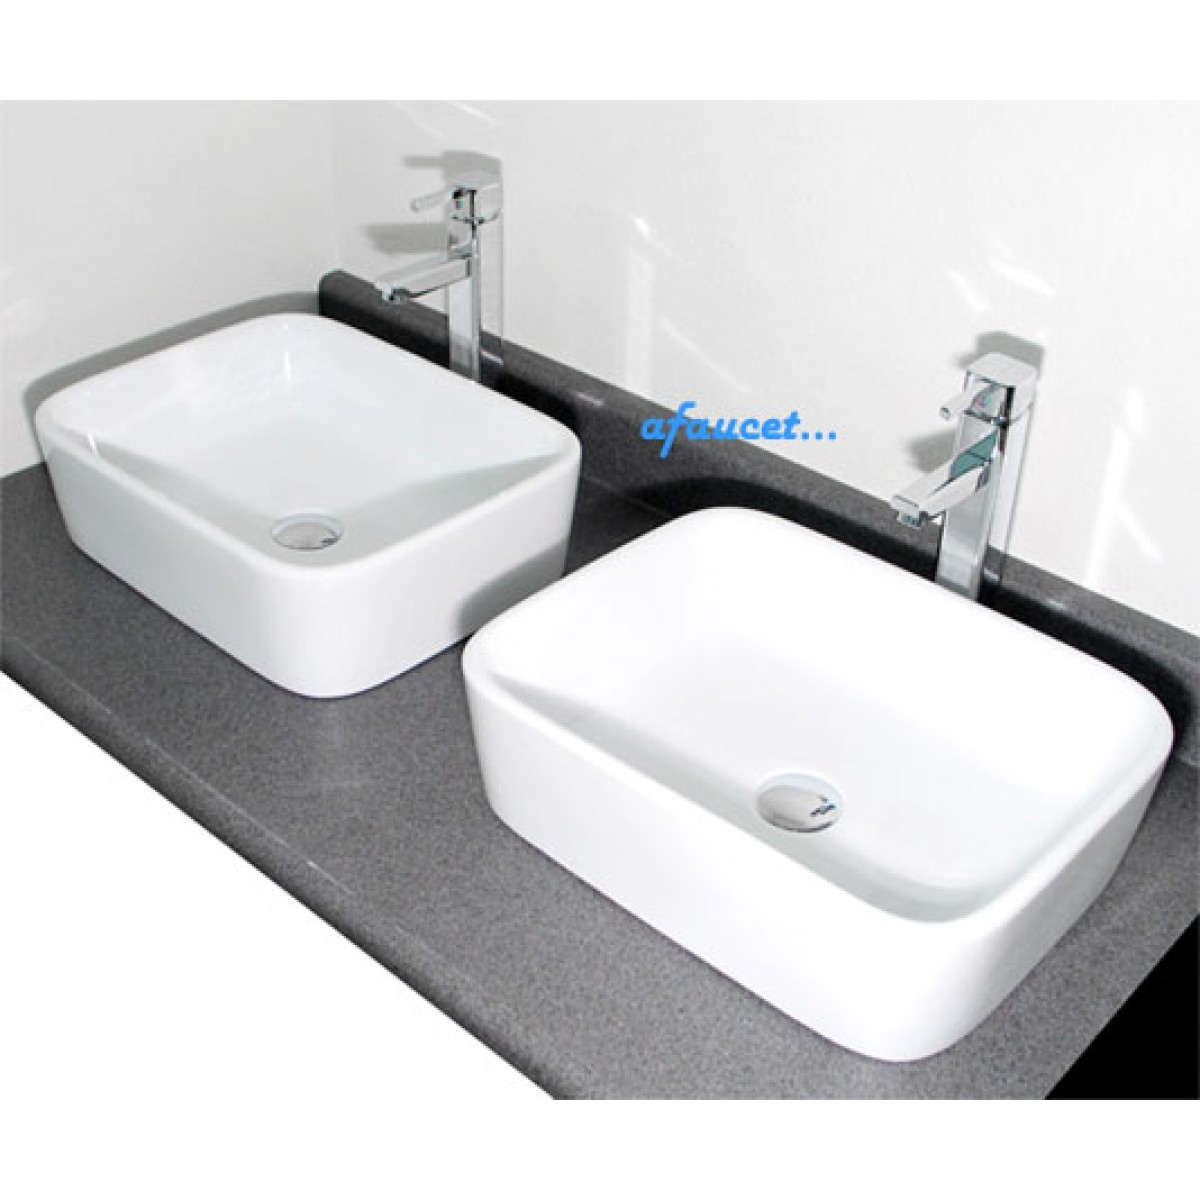 Bathroom Vessel Sinks